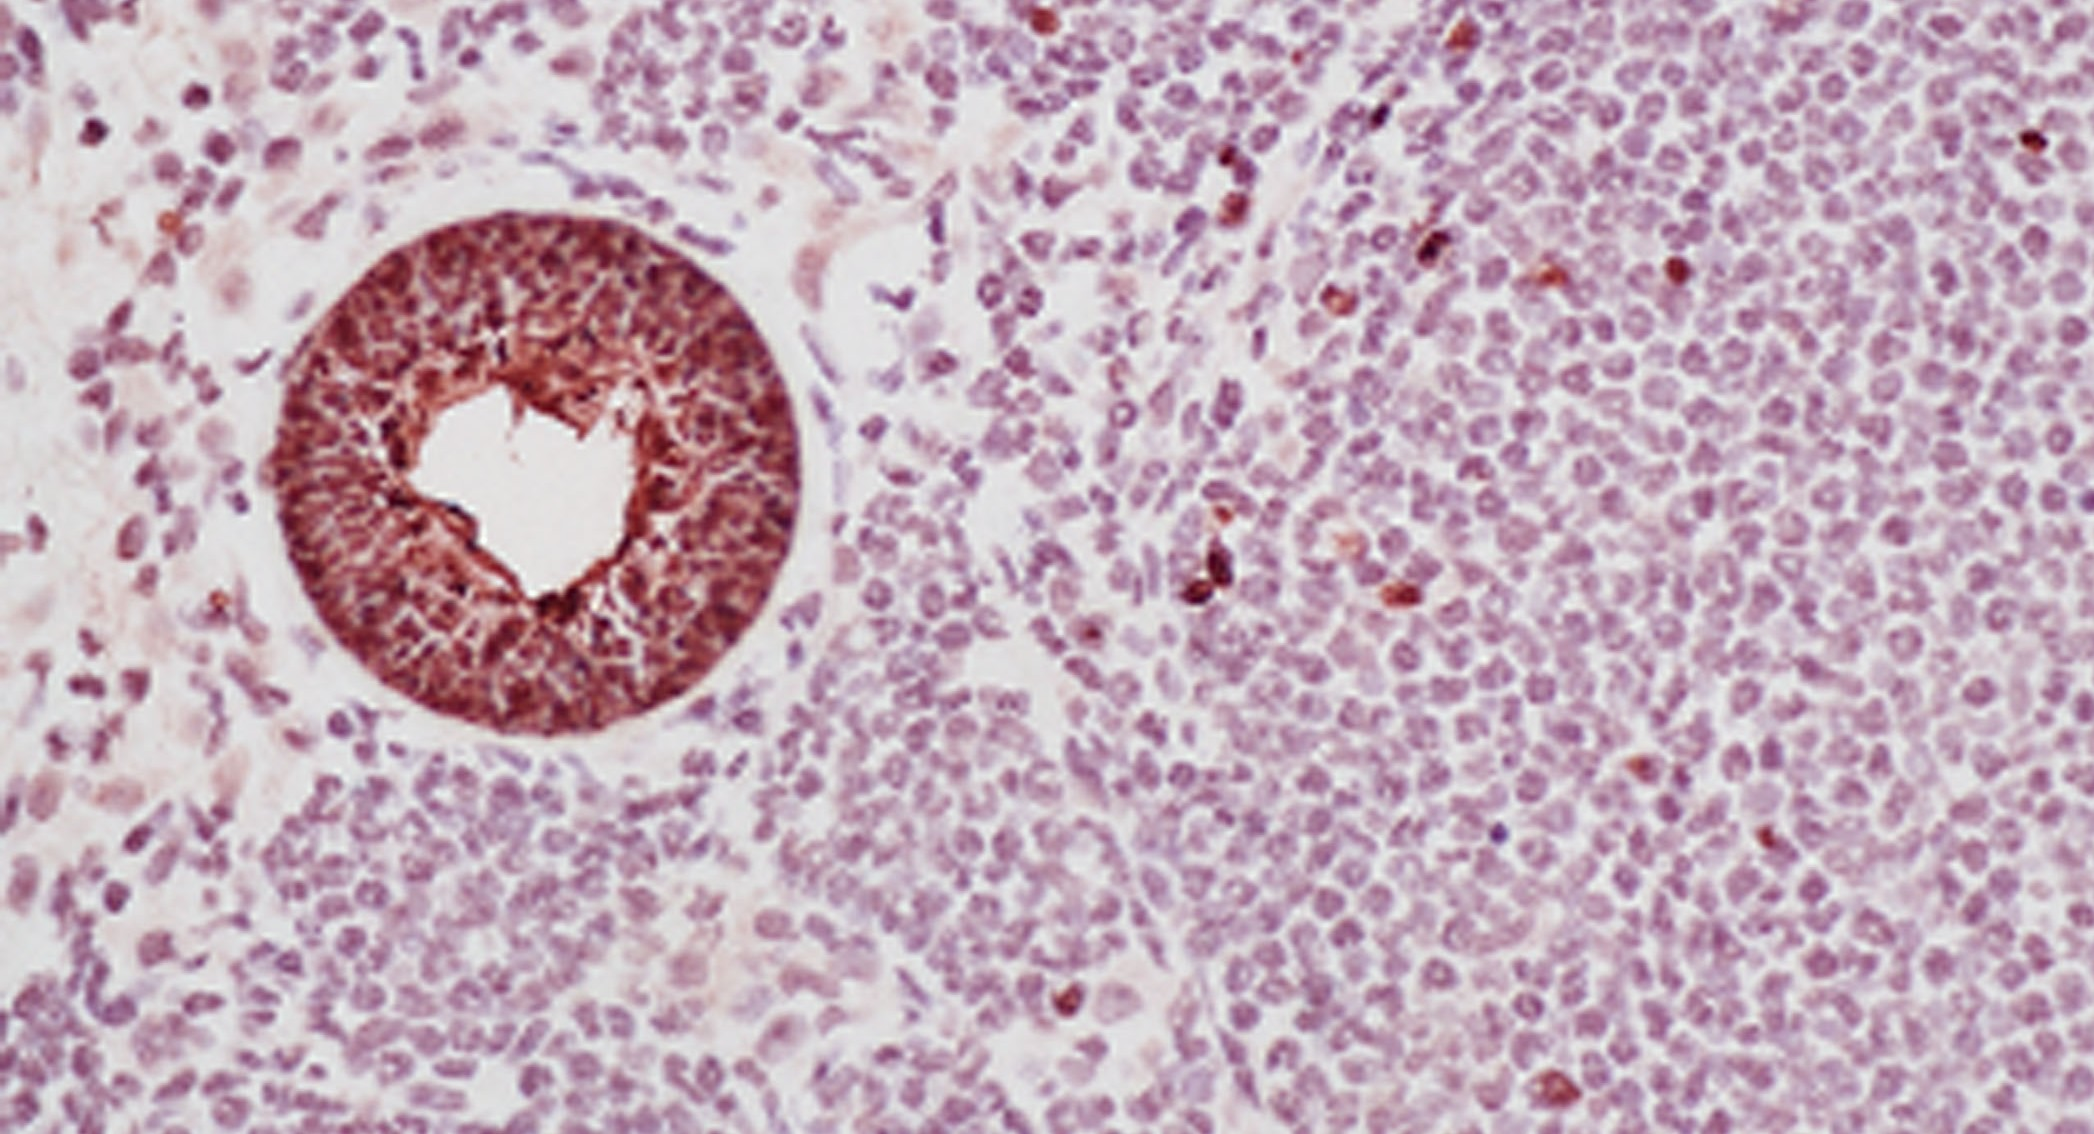 Valley Fever spherule in lung